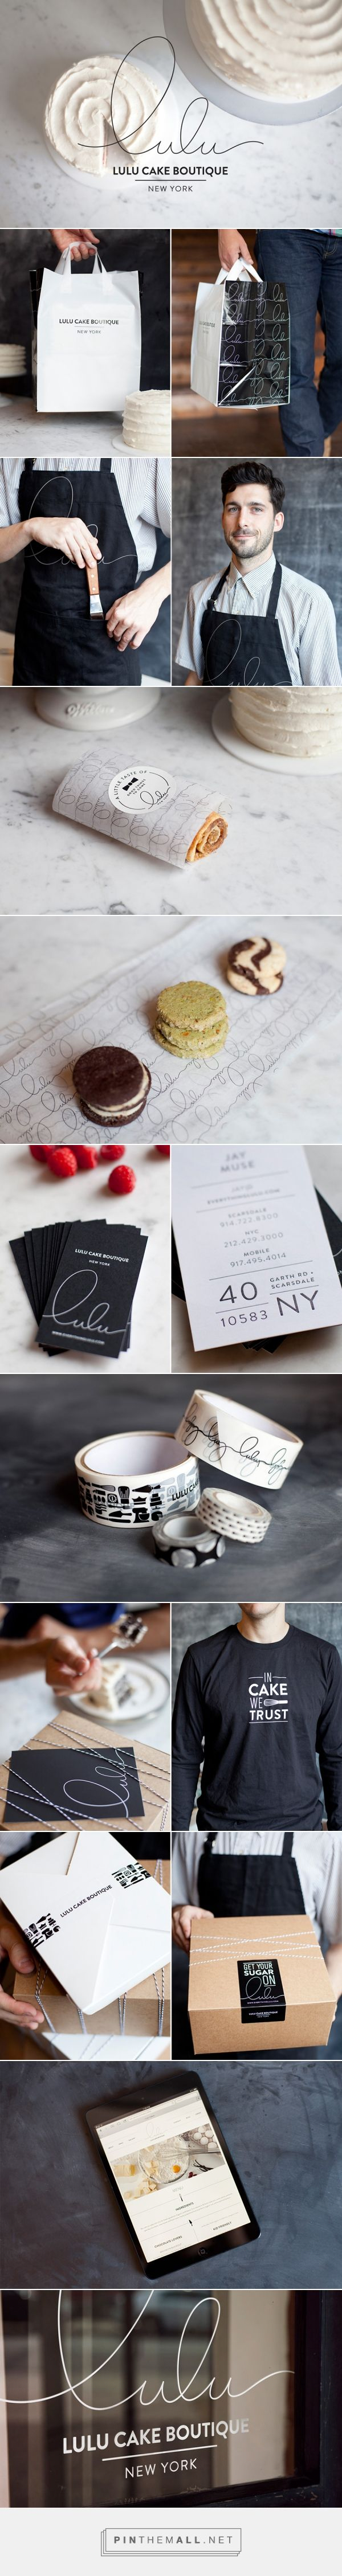 New Brand Identity for Lulu Cake Boutique by Peck and Co - BP&O. Graphic…